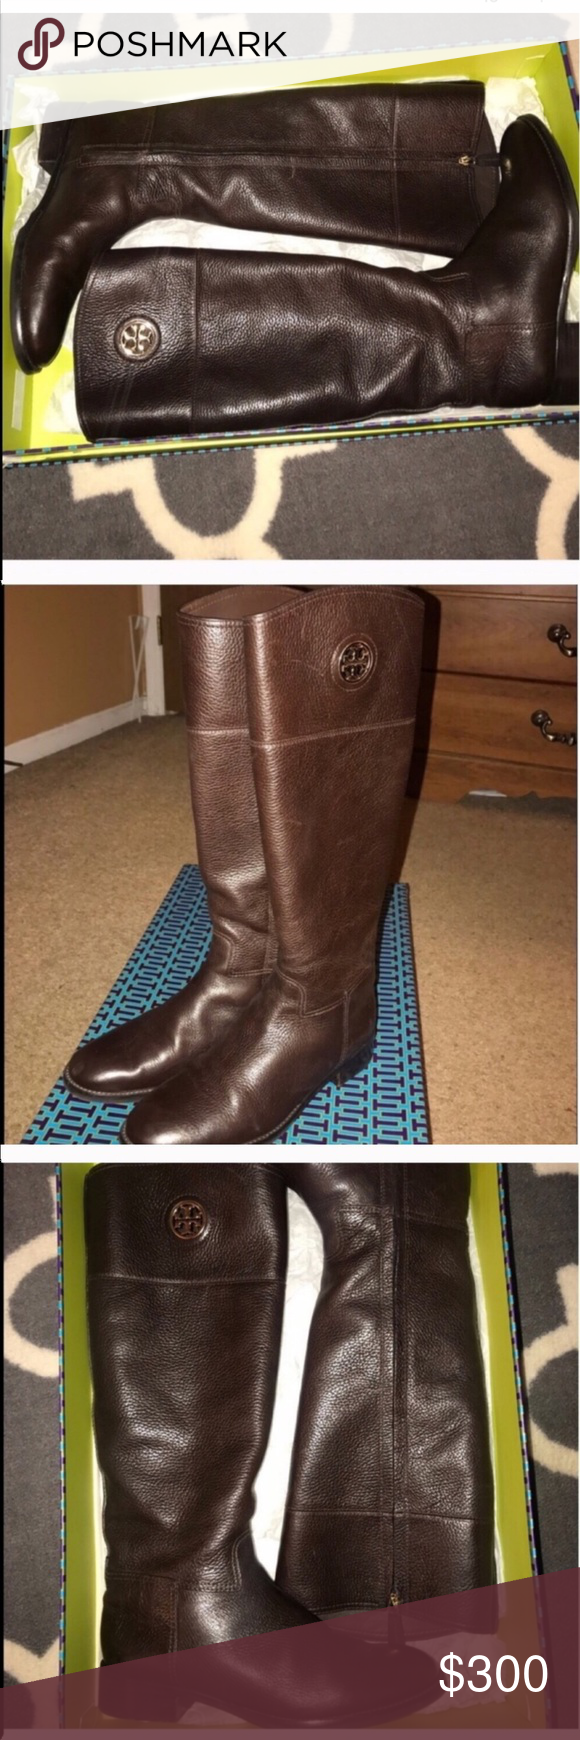 835d216f08d6 Authentic Tory Burch Boots Be ready for fall! Sz 9.5 brown leather Tory  Burch riding boots in very good condition. Purchased from Nordstrom.